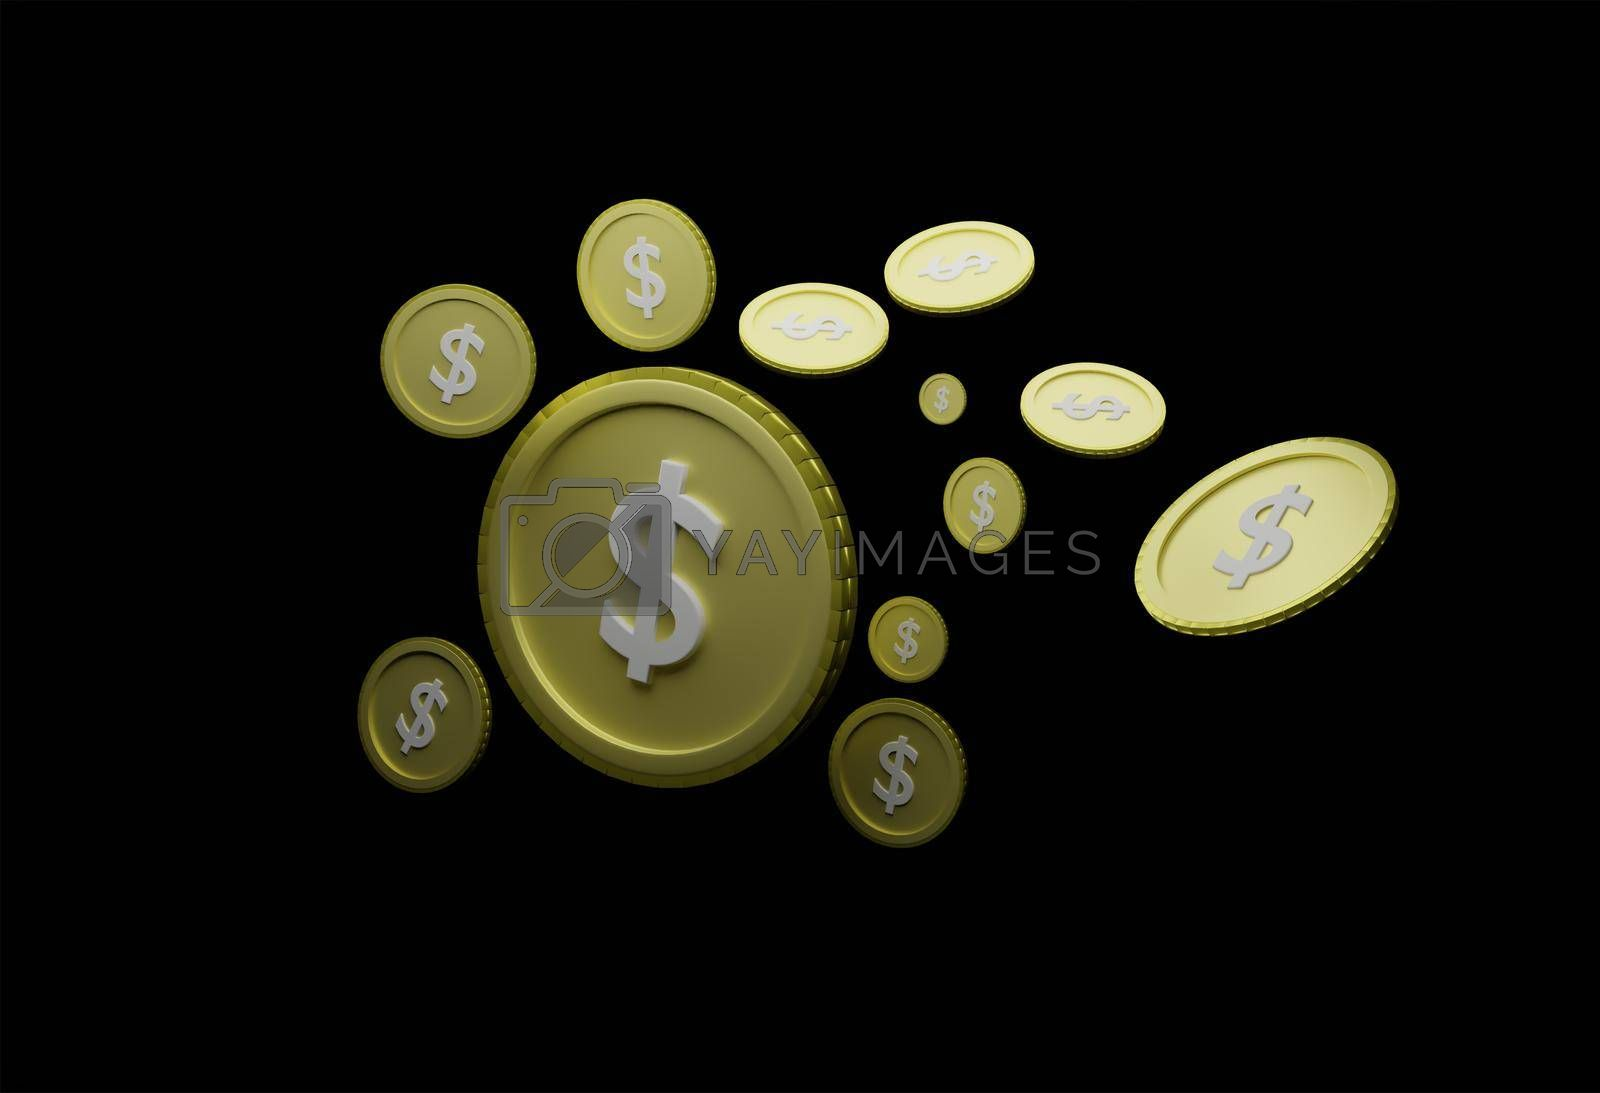 Royalty free image of Abstract floating us dollar coin Black background isolated Concept of currency analysis from economic fluctuations in export trade, global market valuation 3D rendering. by noppha80